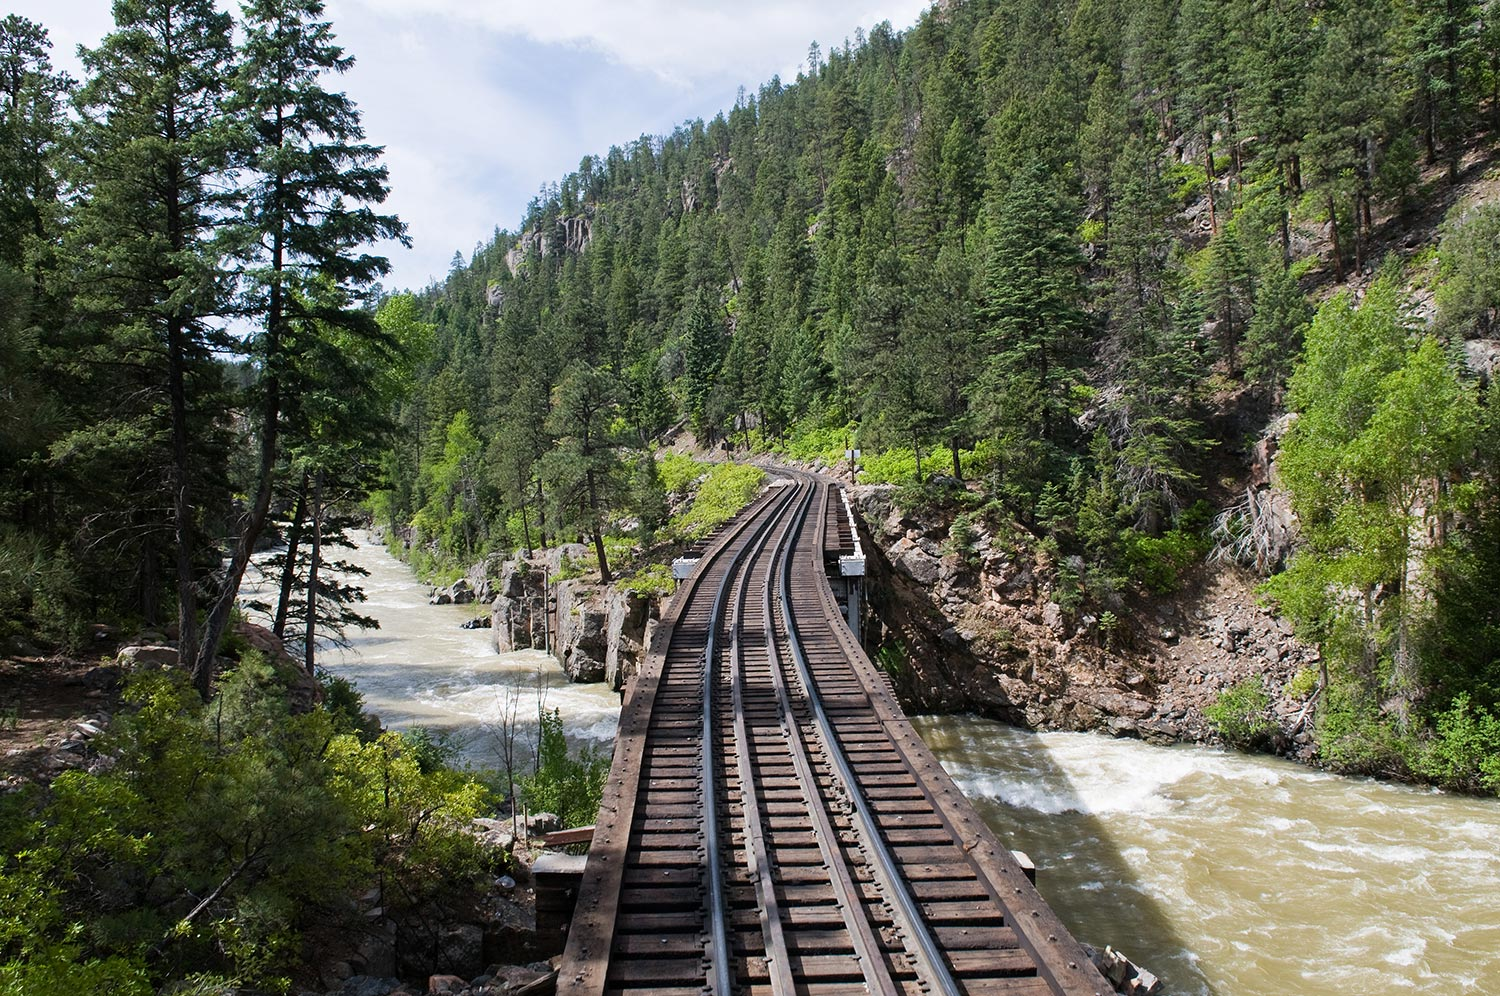 Railroad tracks through the mountains in Durango, CO